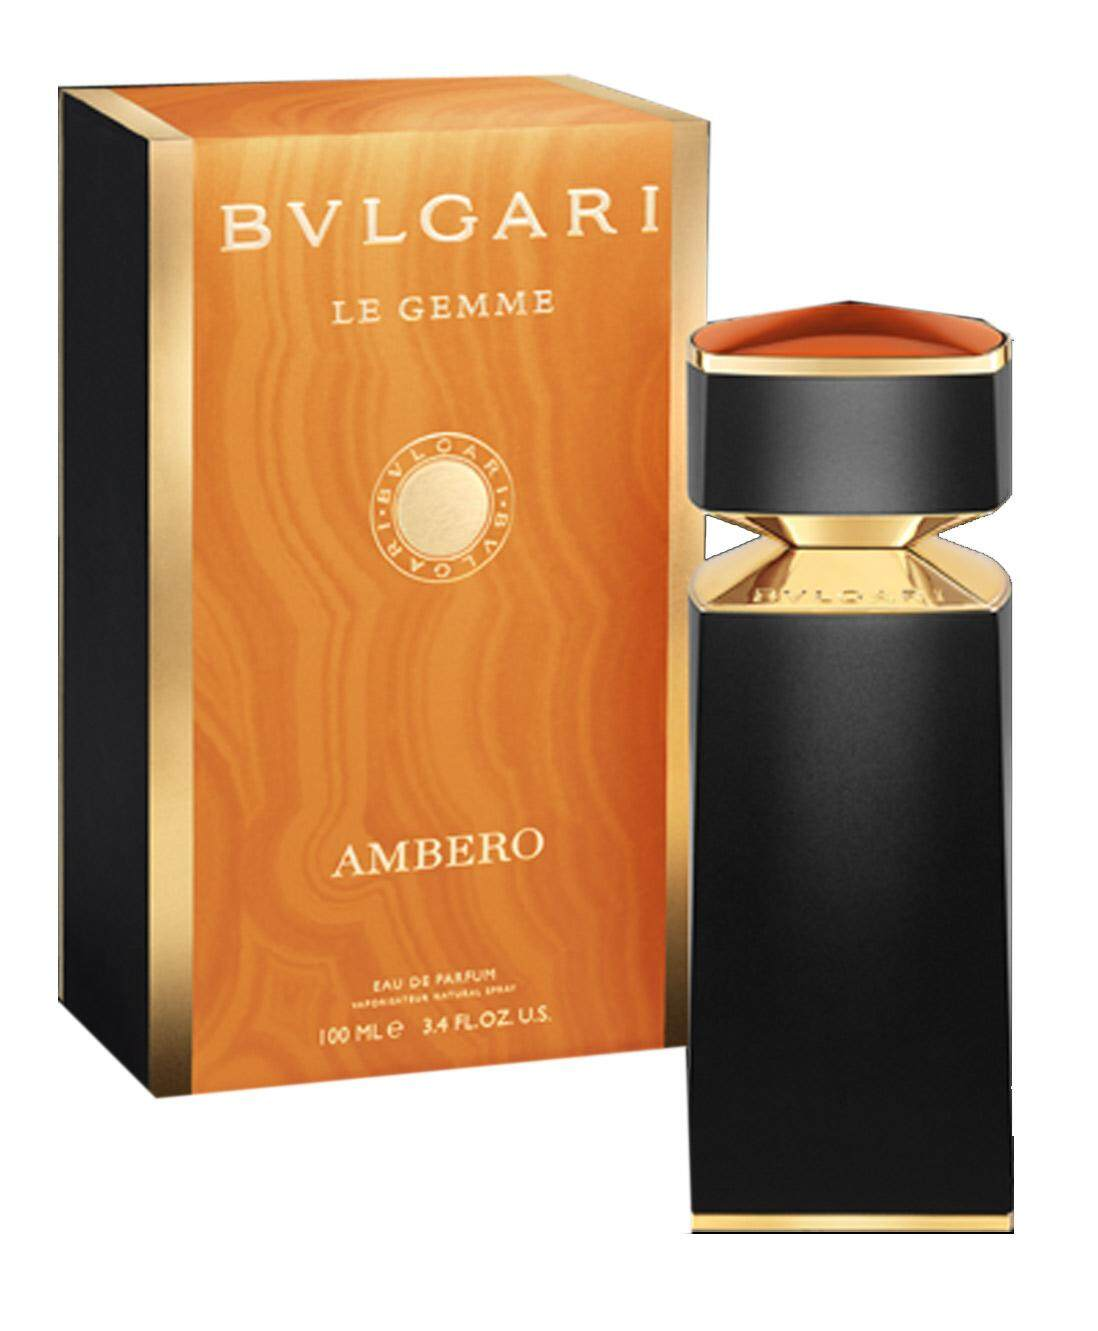 Bvlgari Le Gemme Ambero for Men EDP 100ML [พร้อมกล่อง]